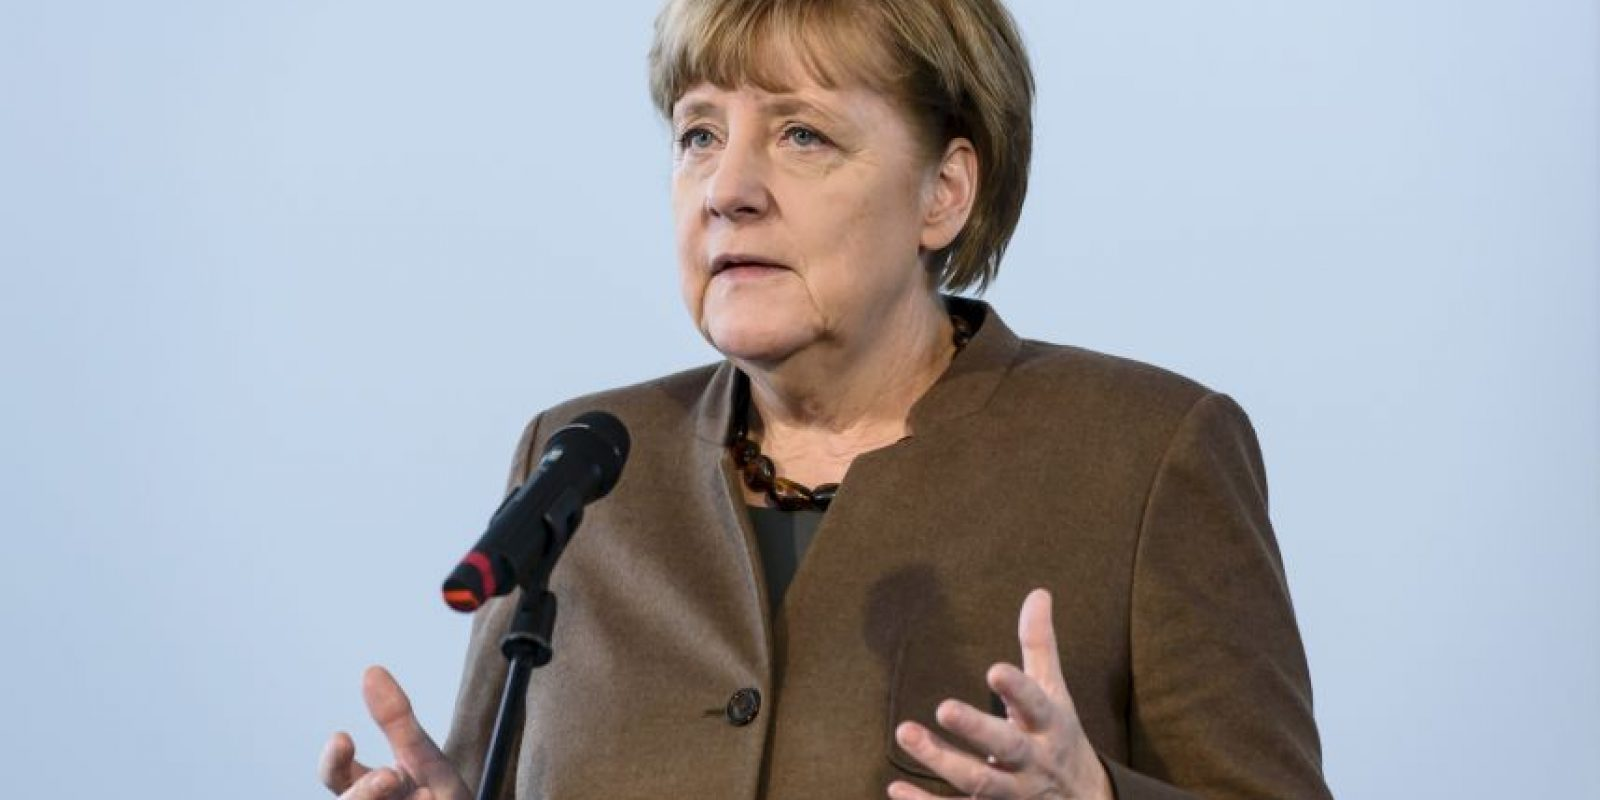 Las fotos que marcaron el 2015 de Angela Merkel Foto: Getty Images